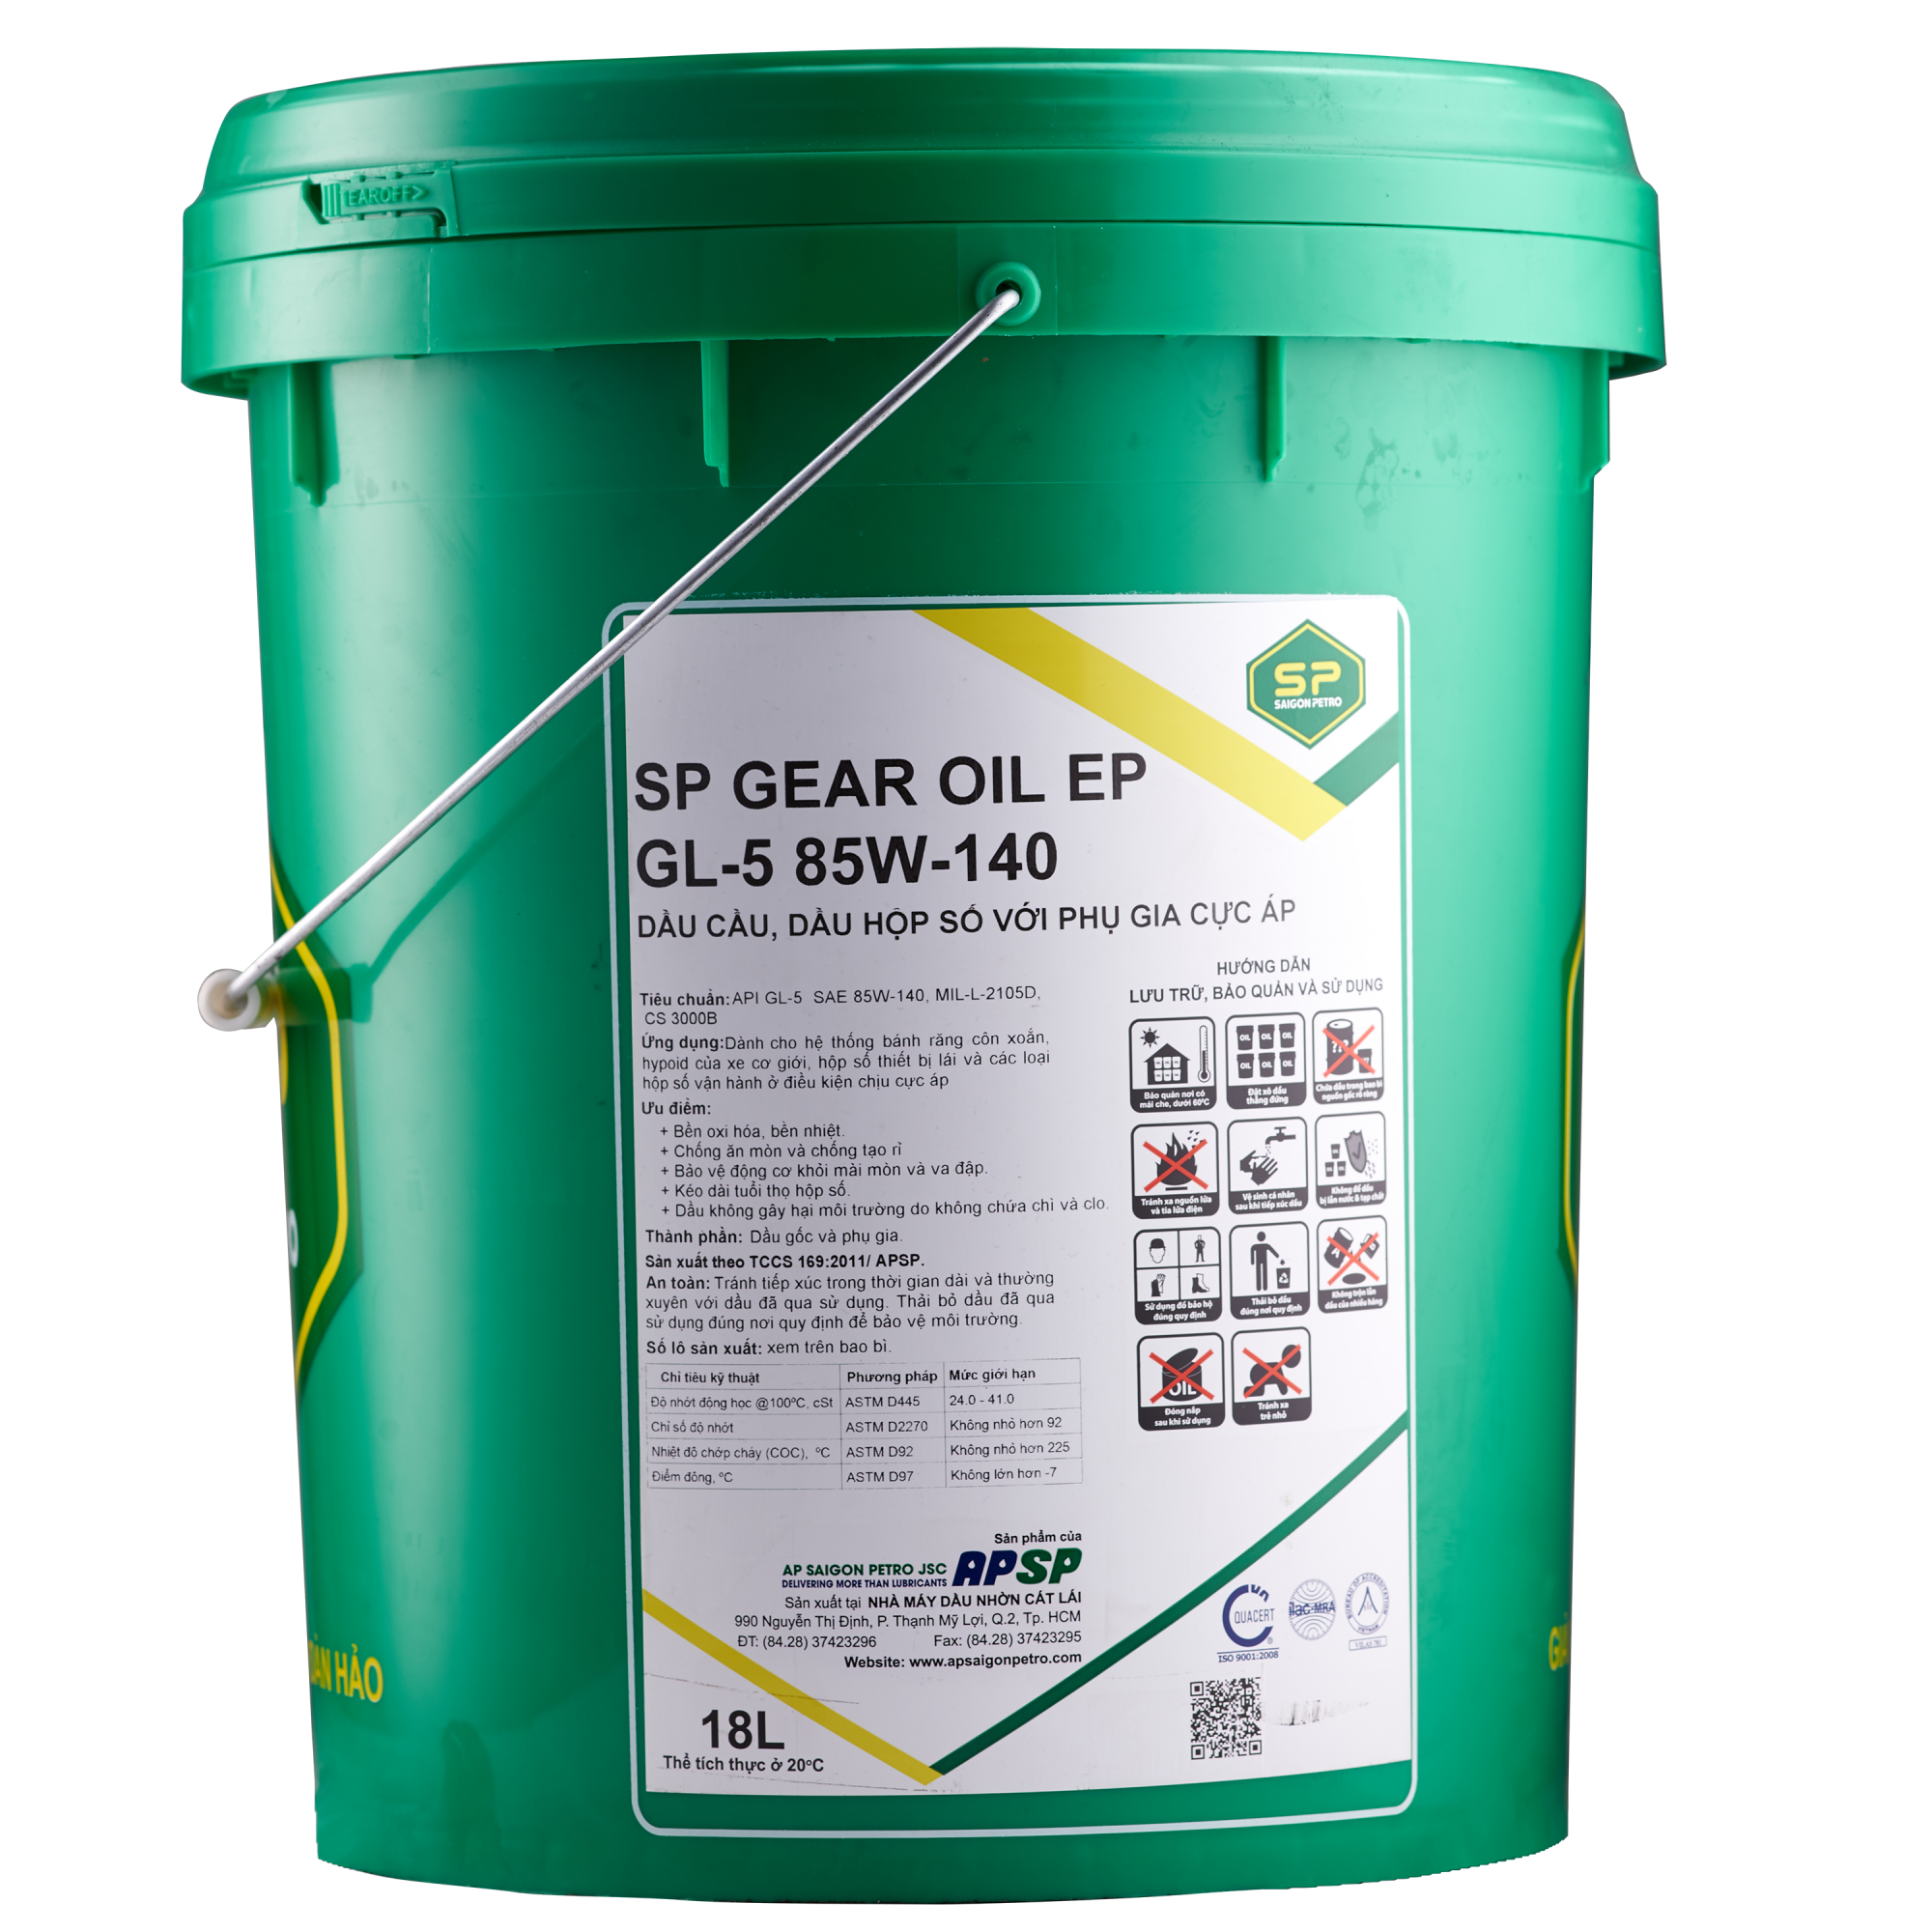 SP GEAR OIL EP GL-5 85W-140